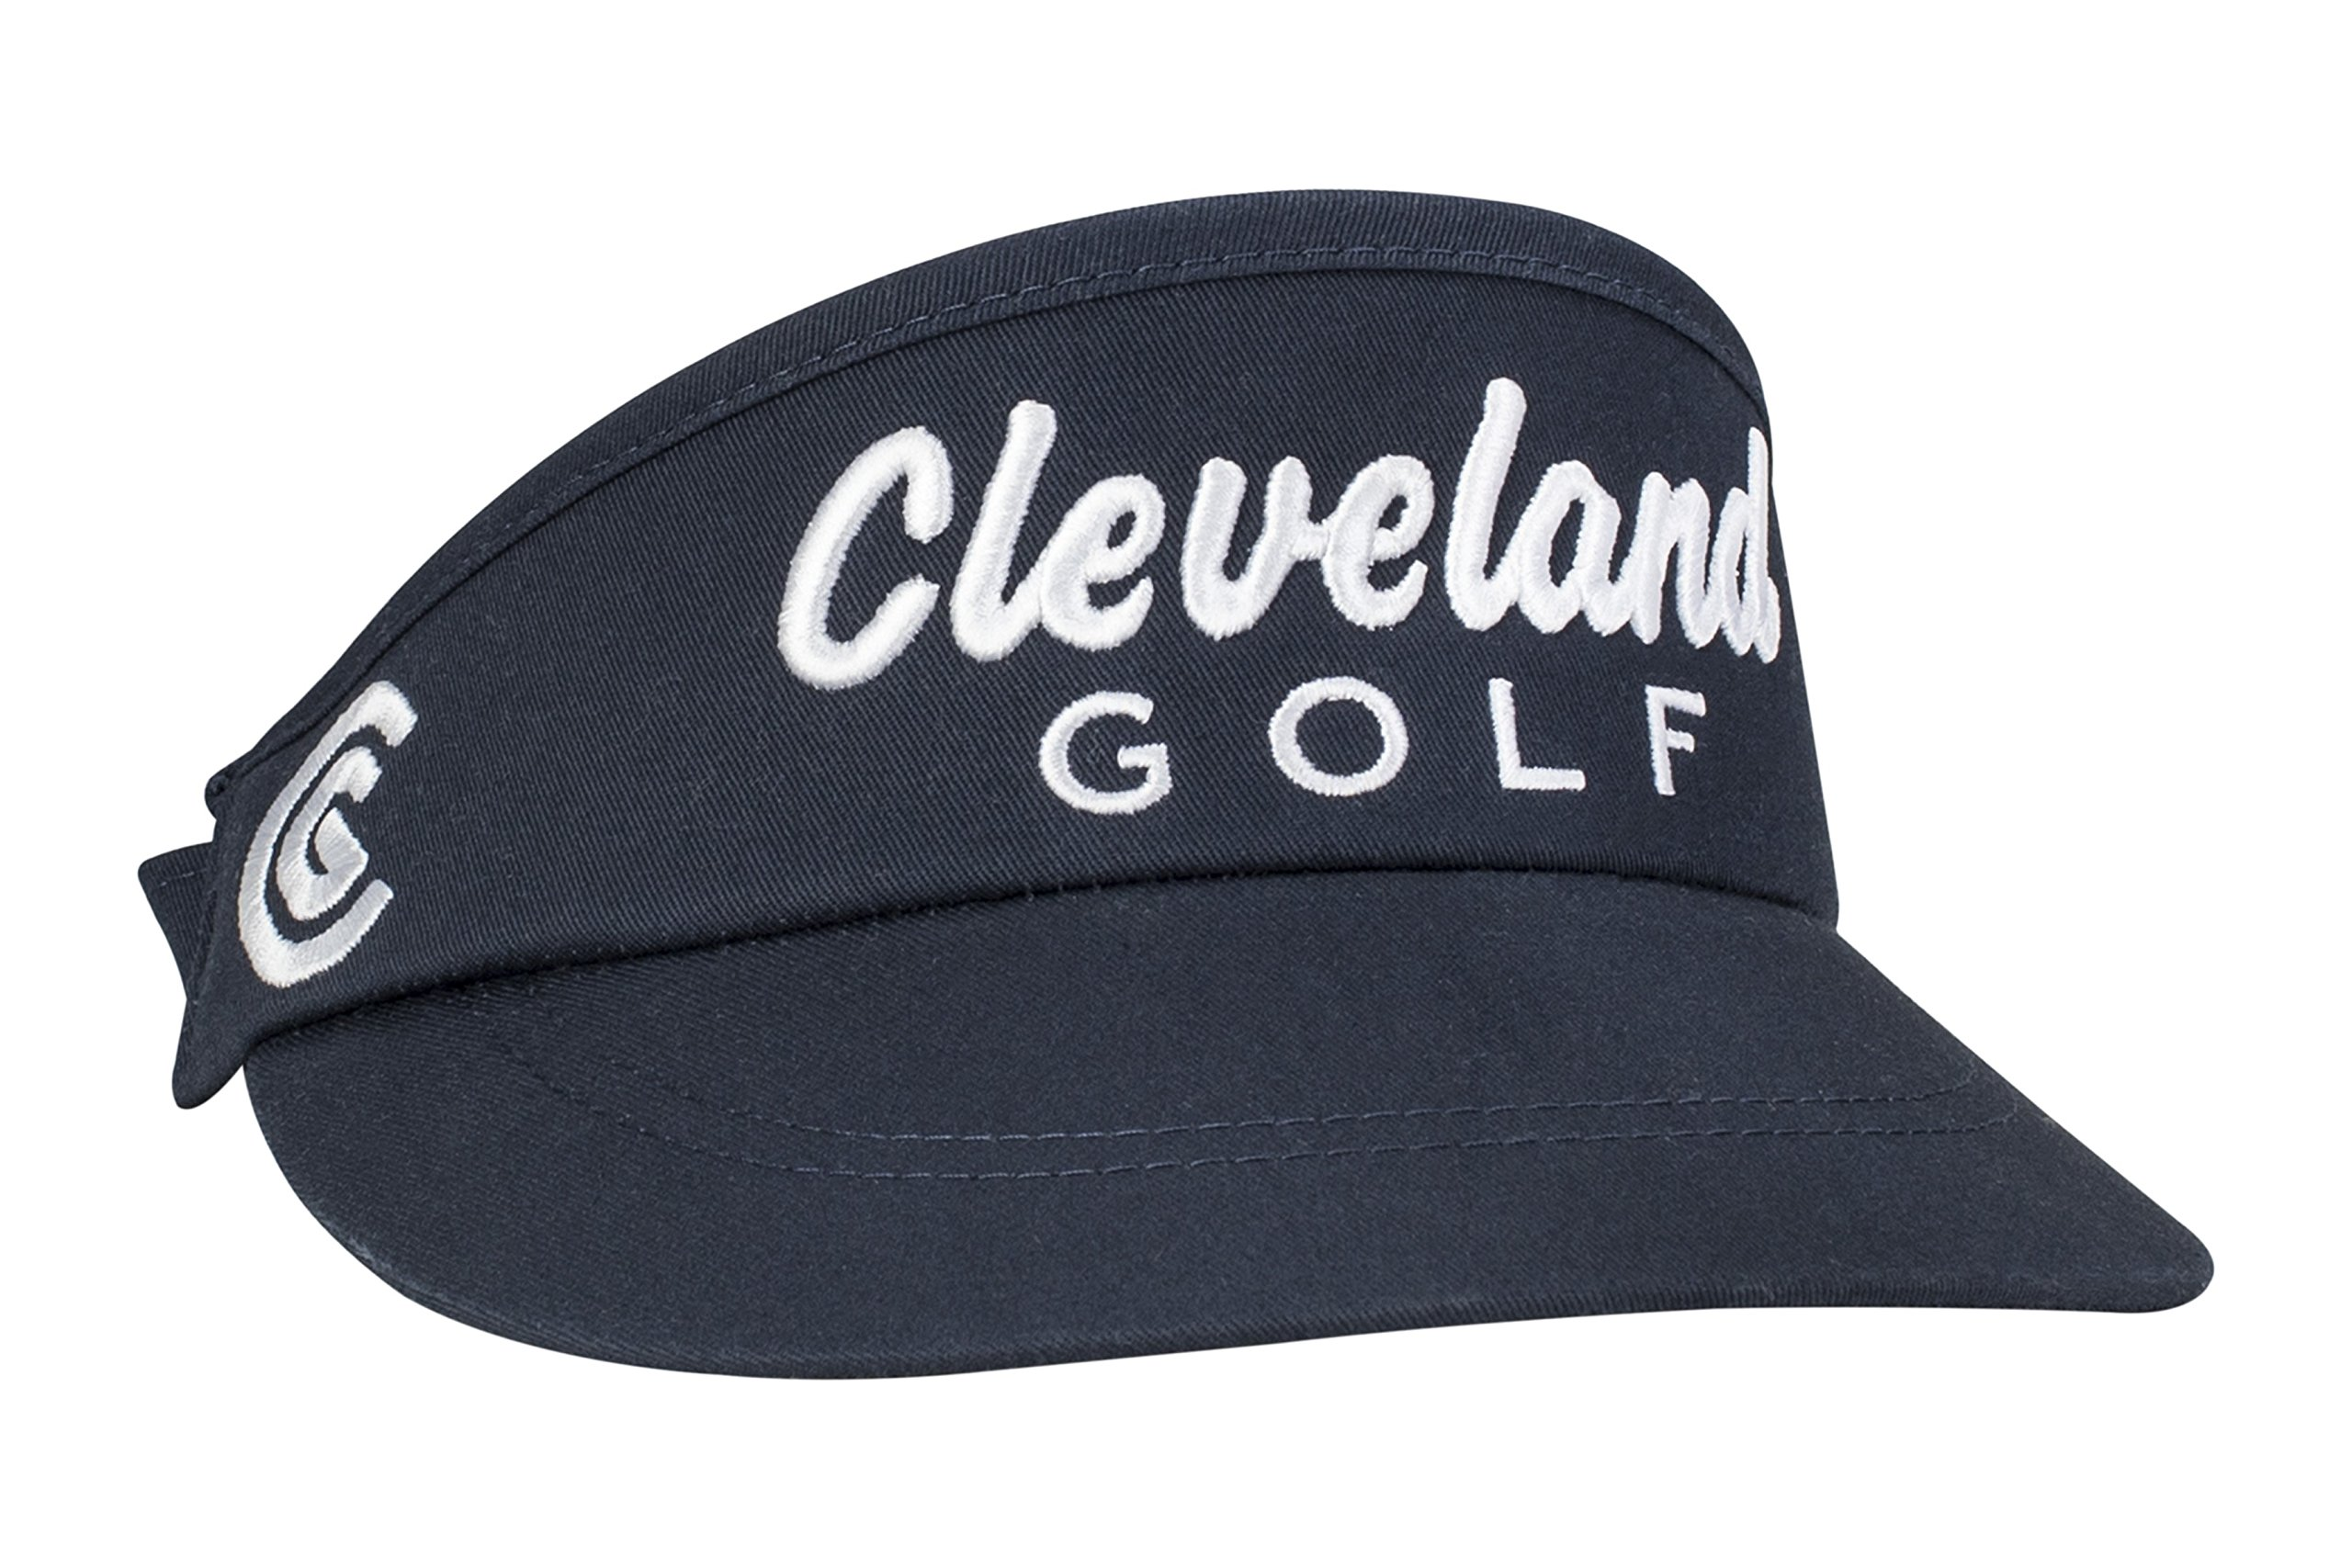 Cleveland Golf Mens Performance Visor, Navy, One Size Fits All